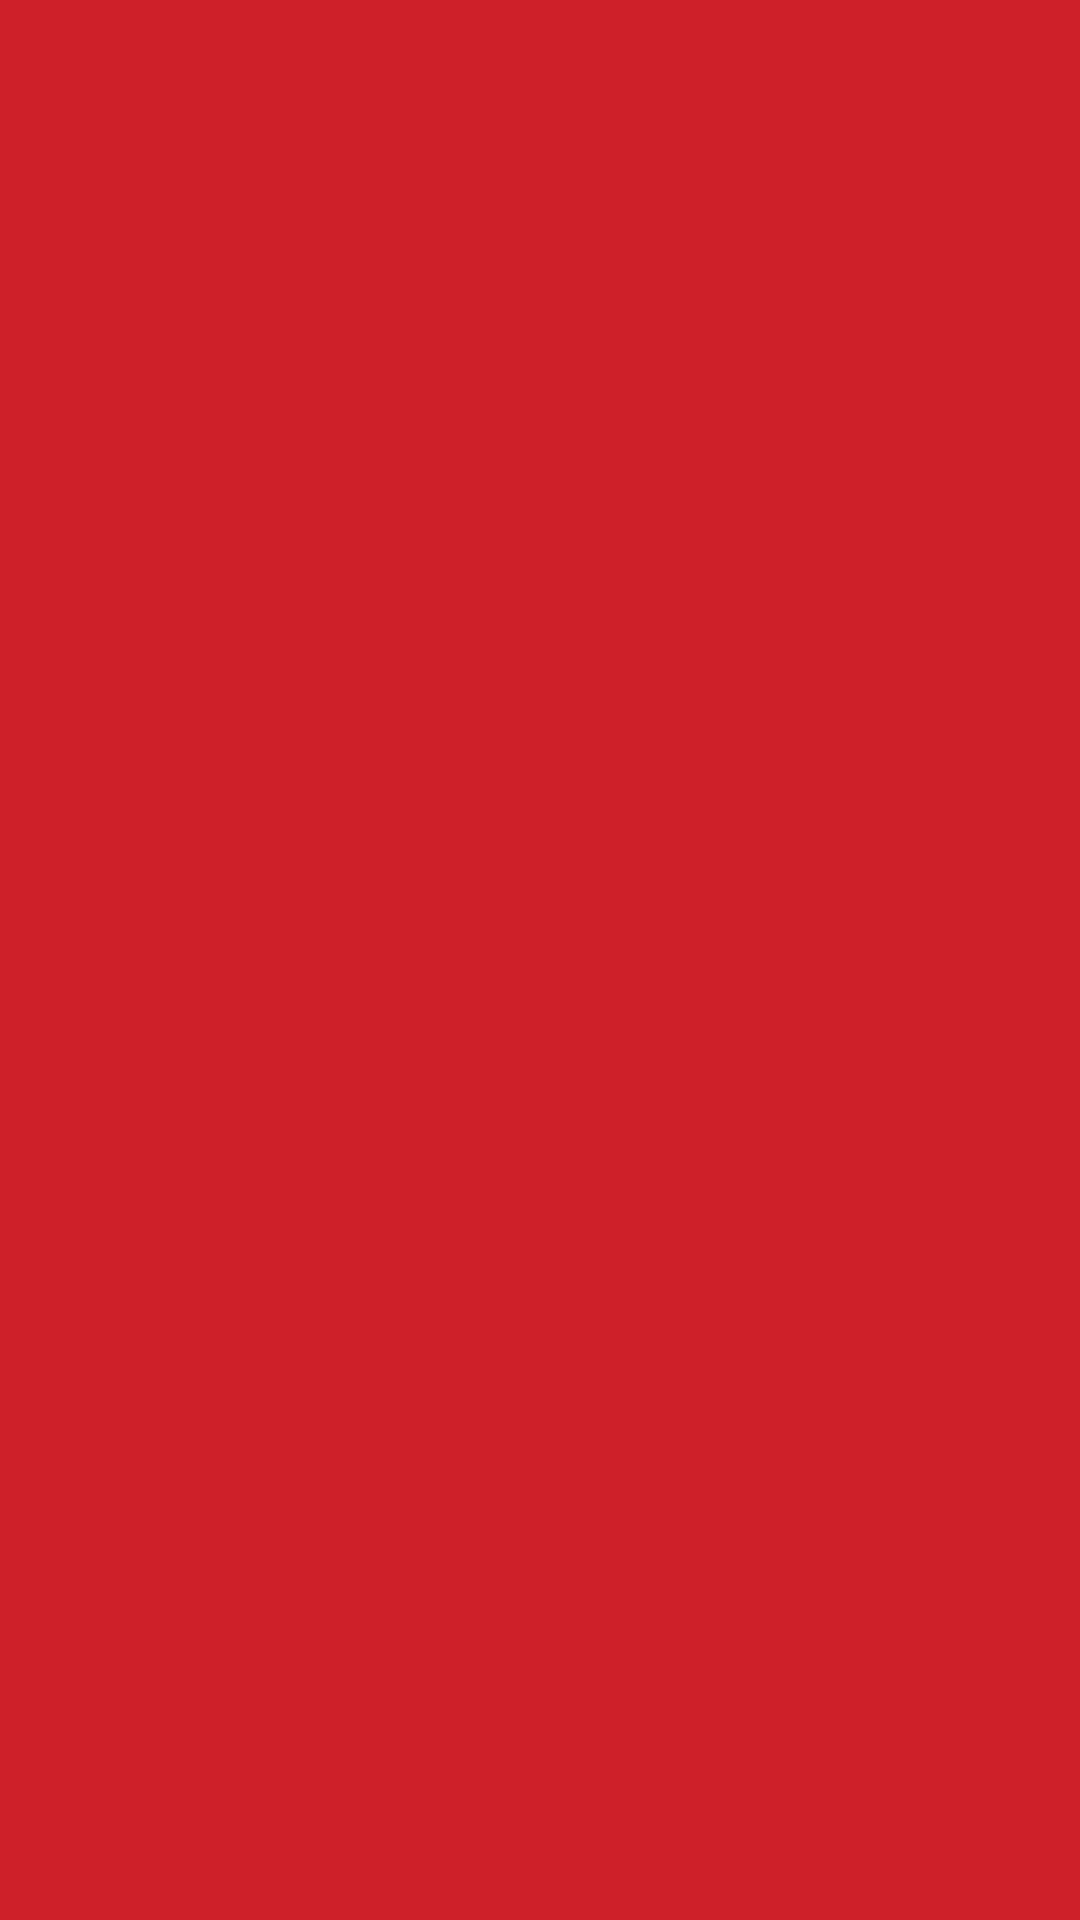 1080x1920 Fire Engine Red Solid Color Background